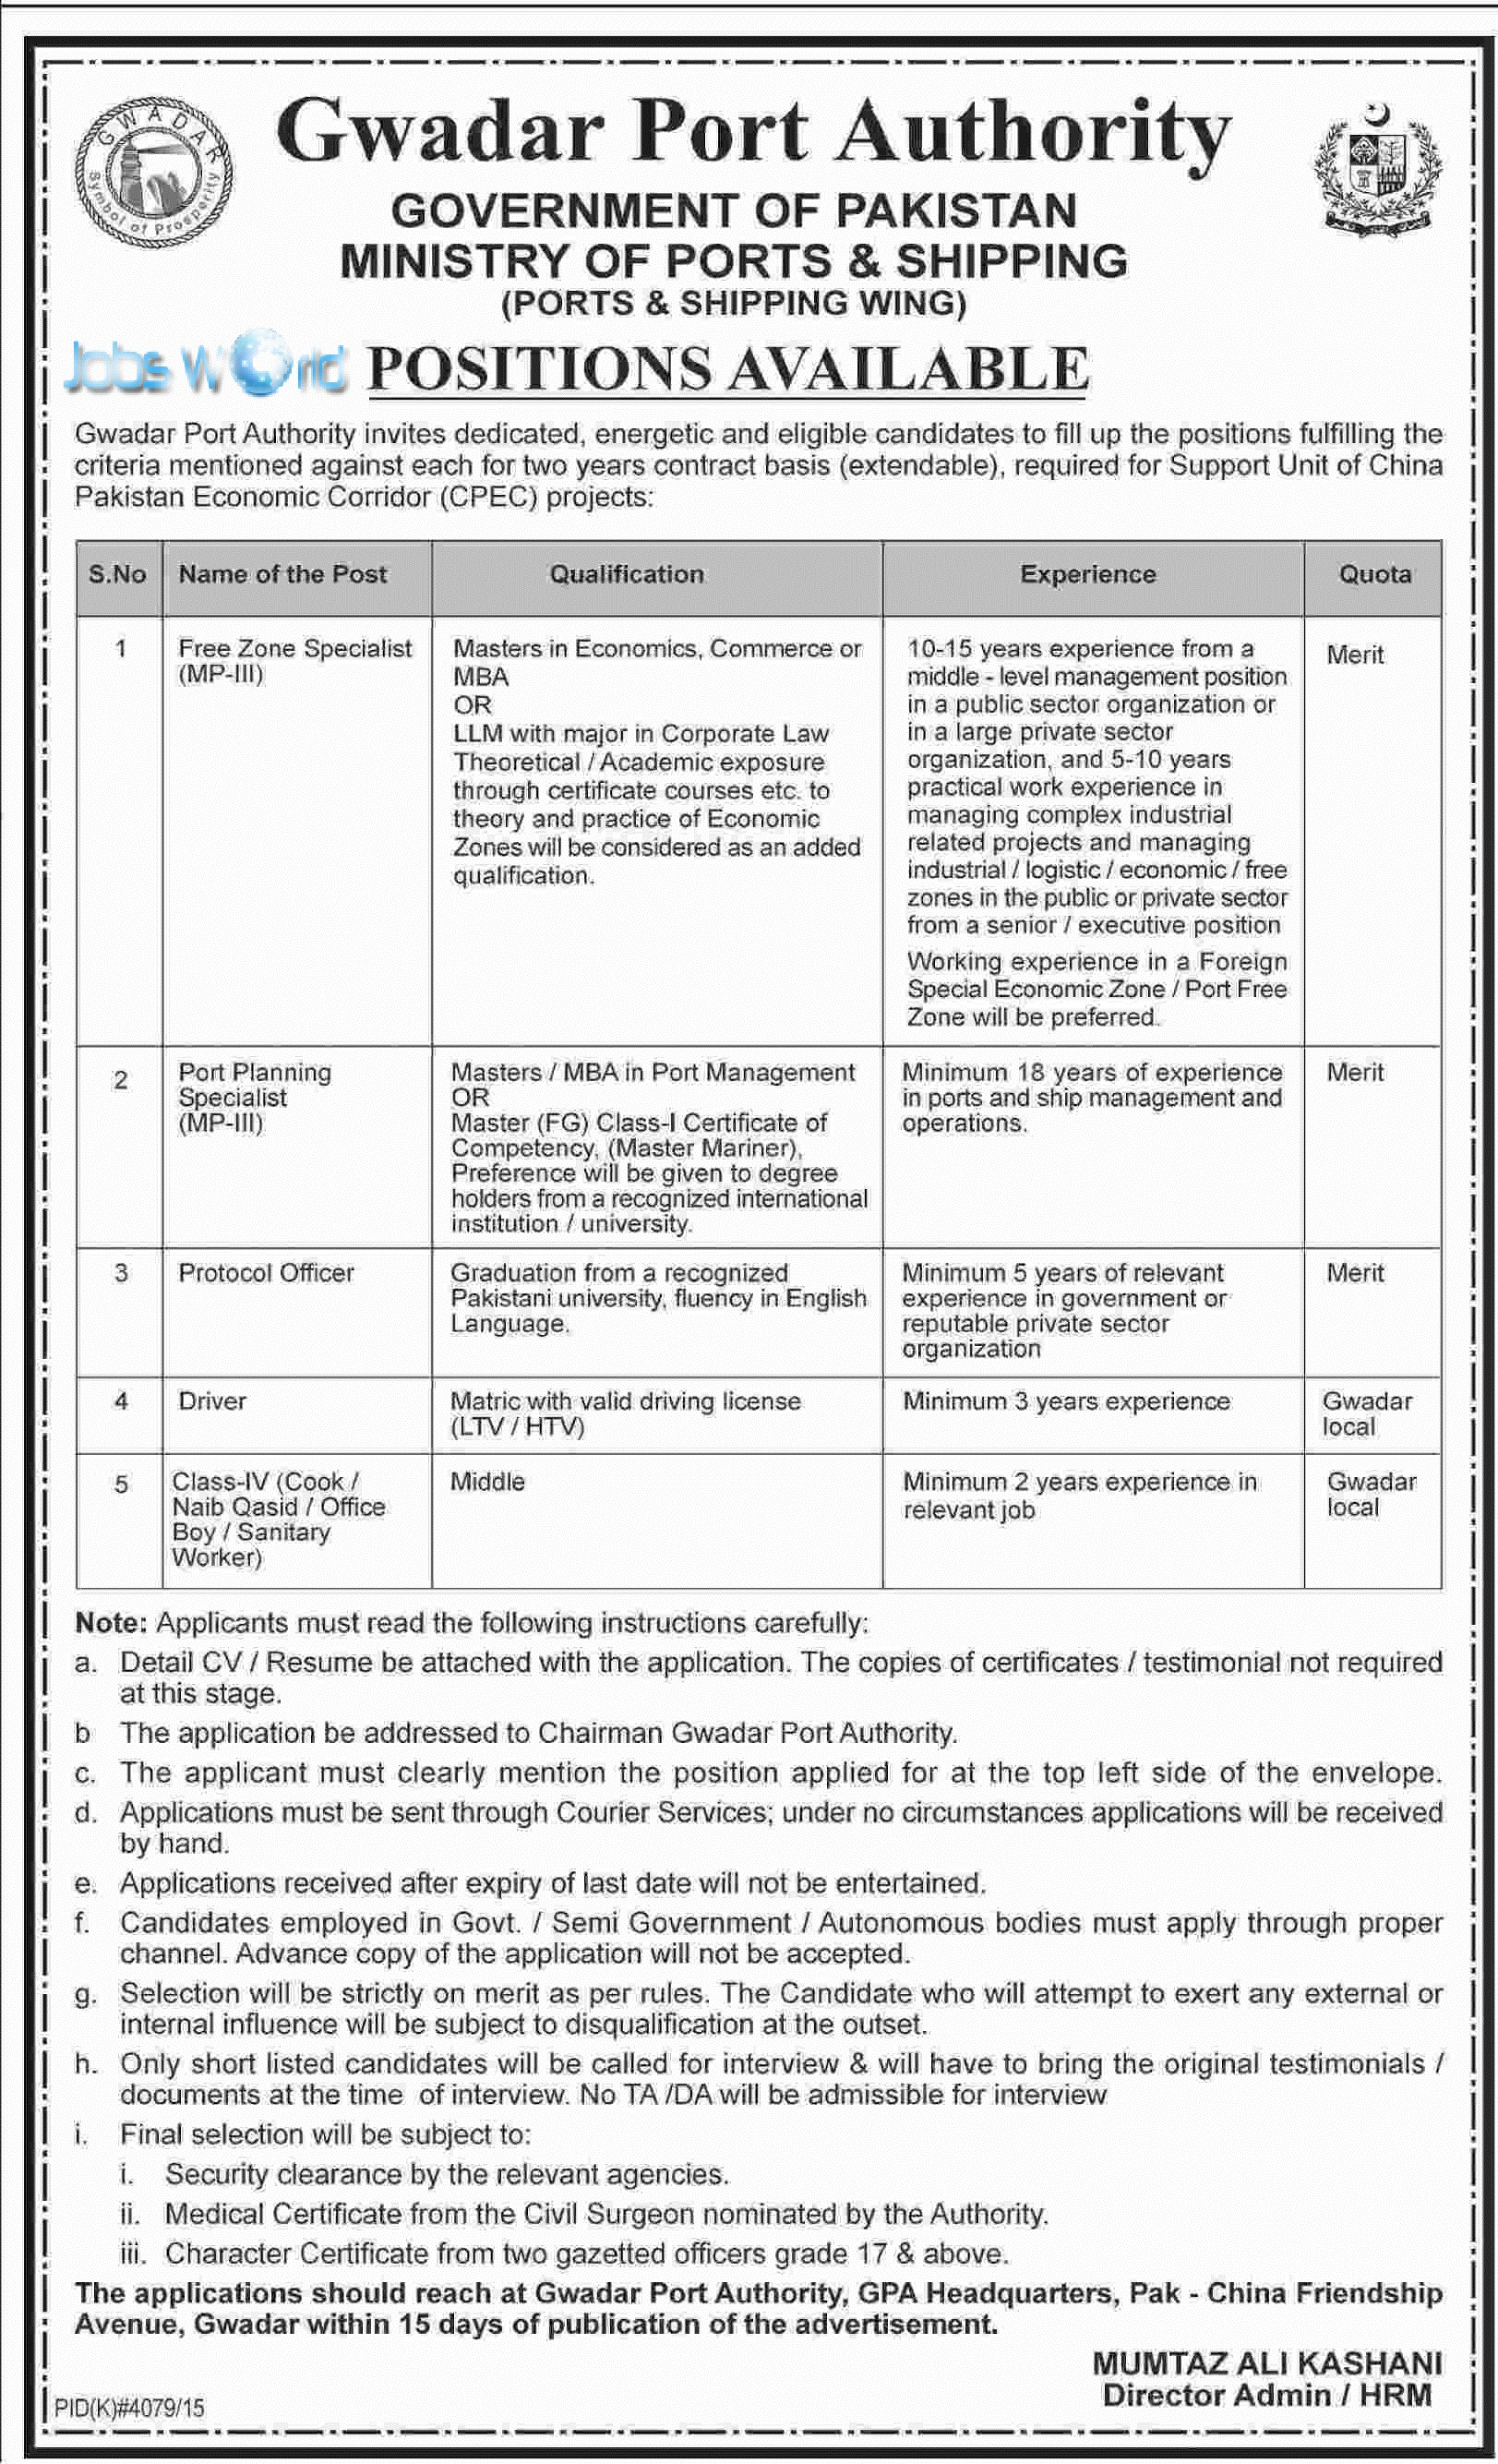 gwadar port authority jobs ministry of ports shipping gwadar port authority jobs 2016 ministry of ports shipping jobsworld